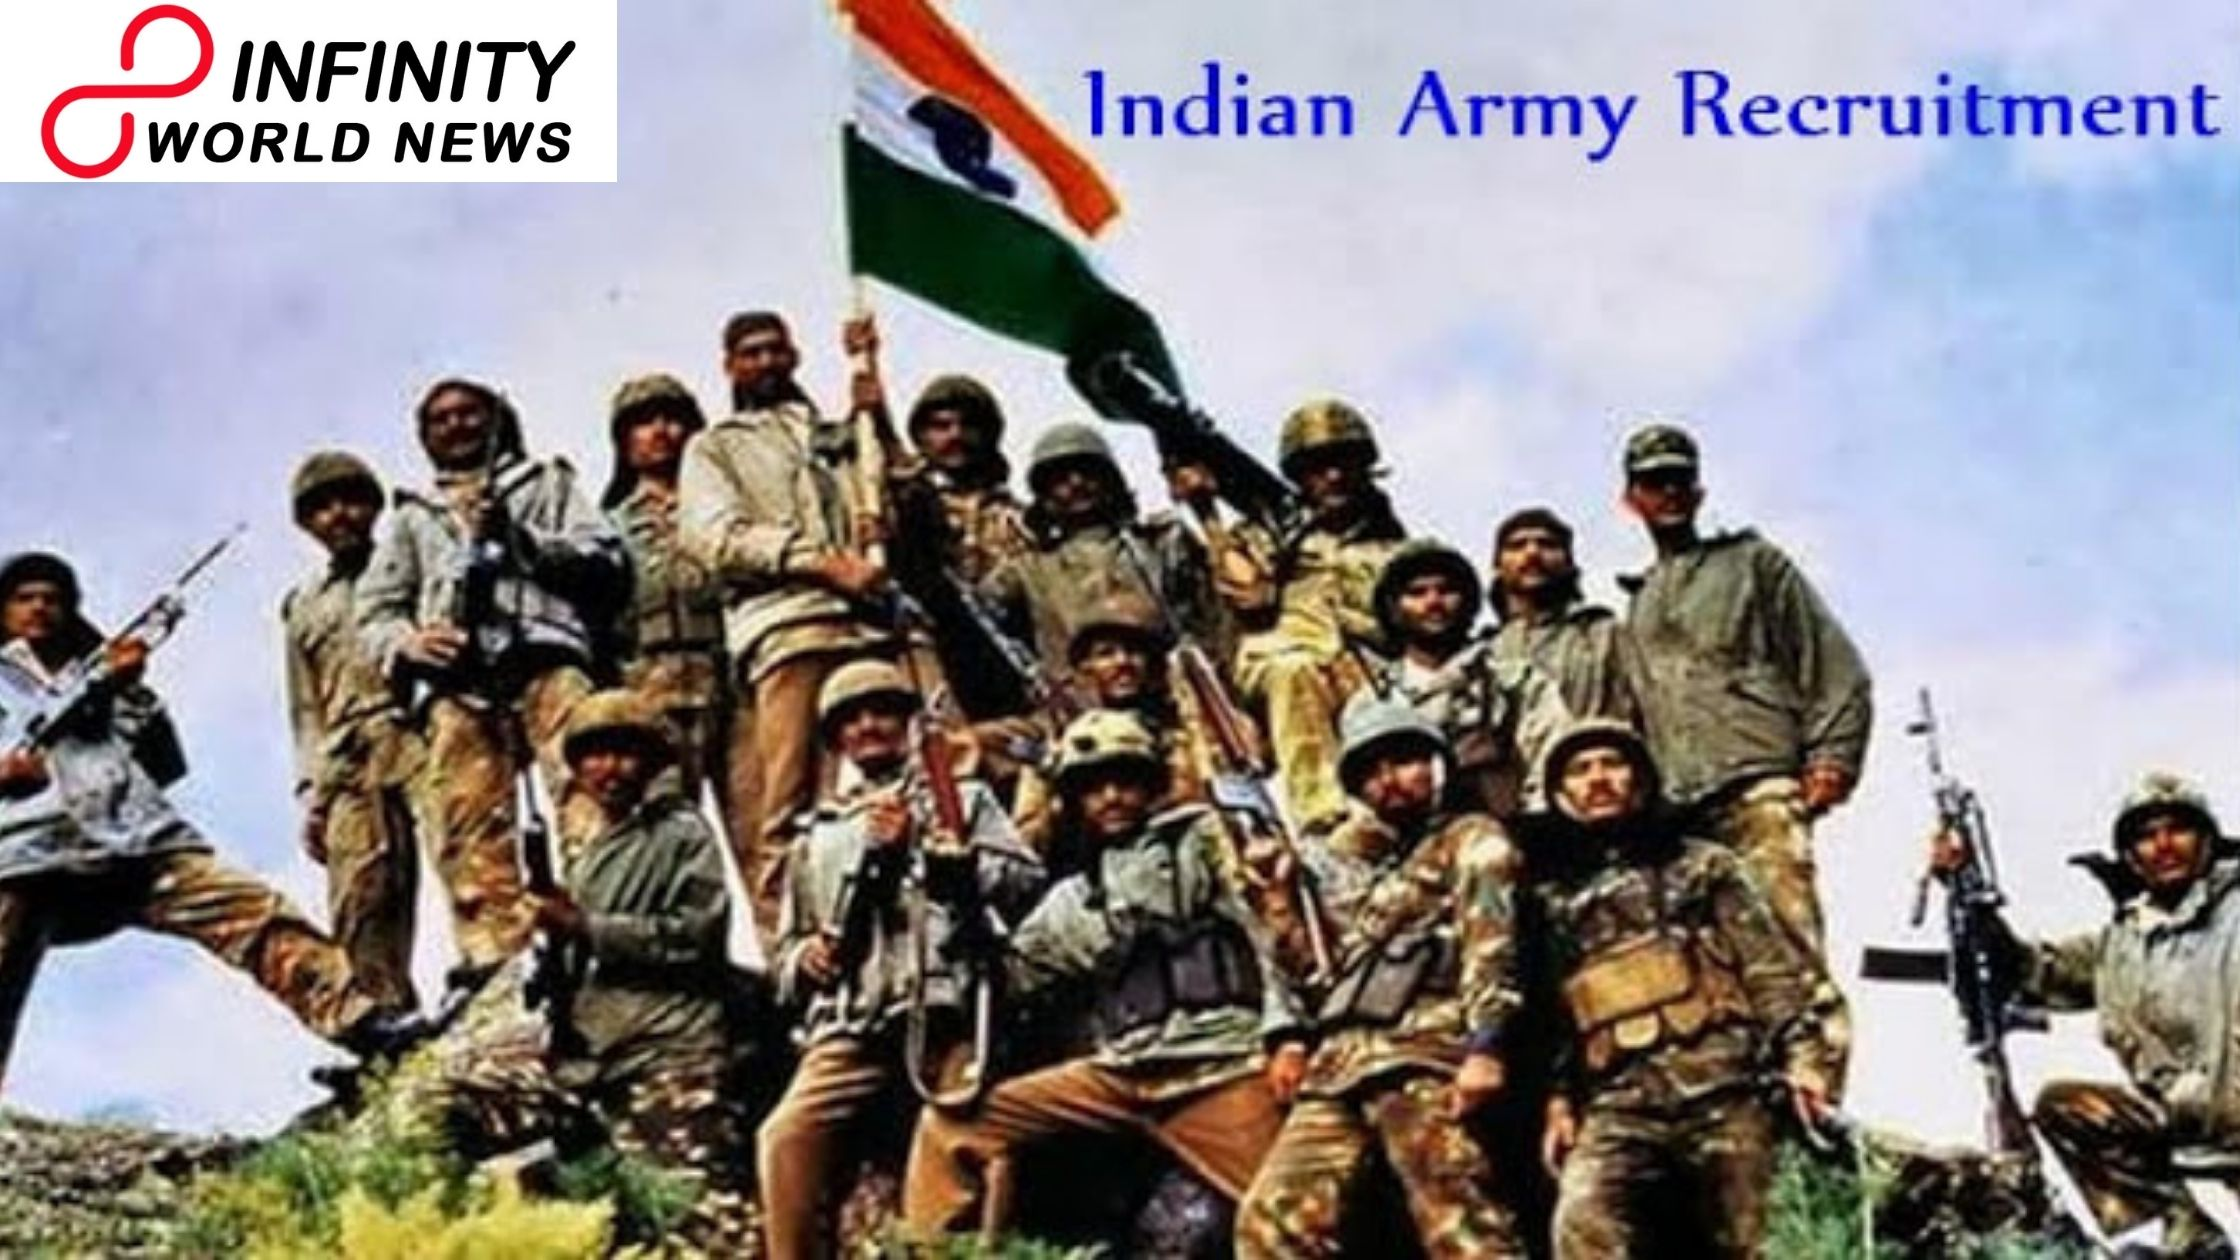 Indian Army to start enlistment rally in Secunderabad on January 15